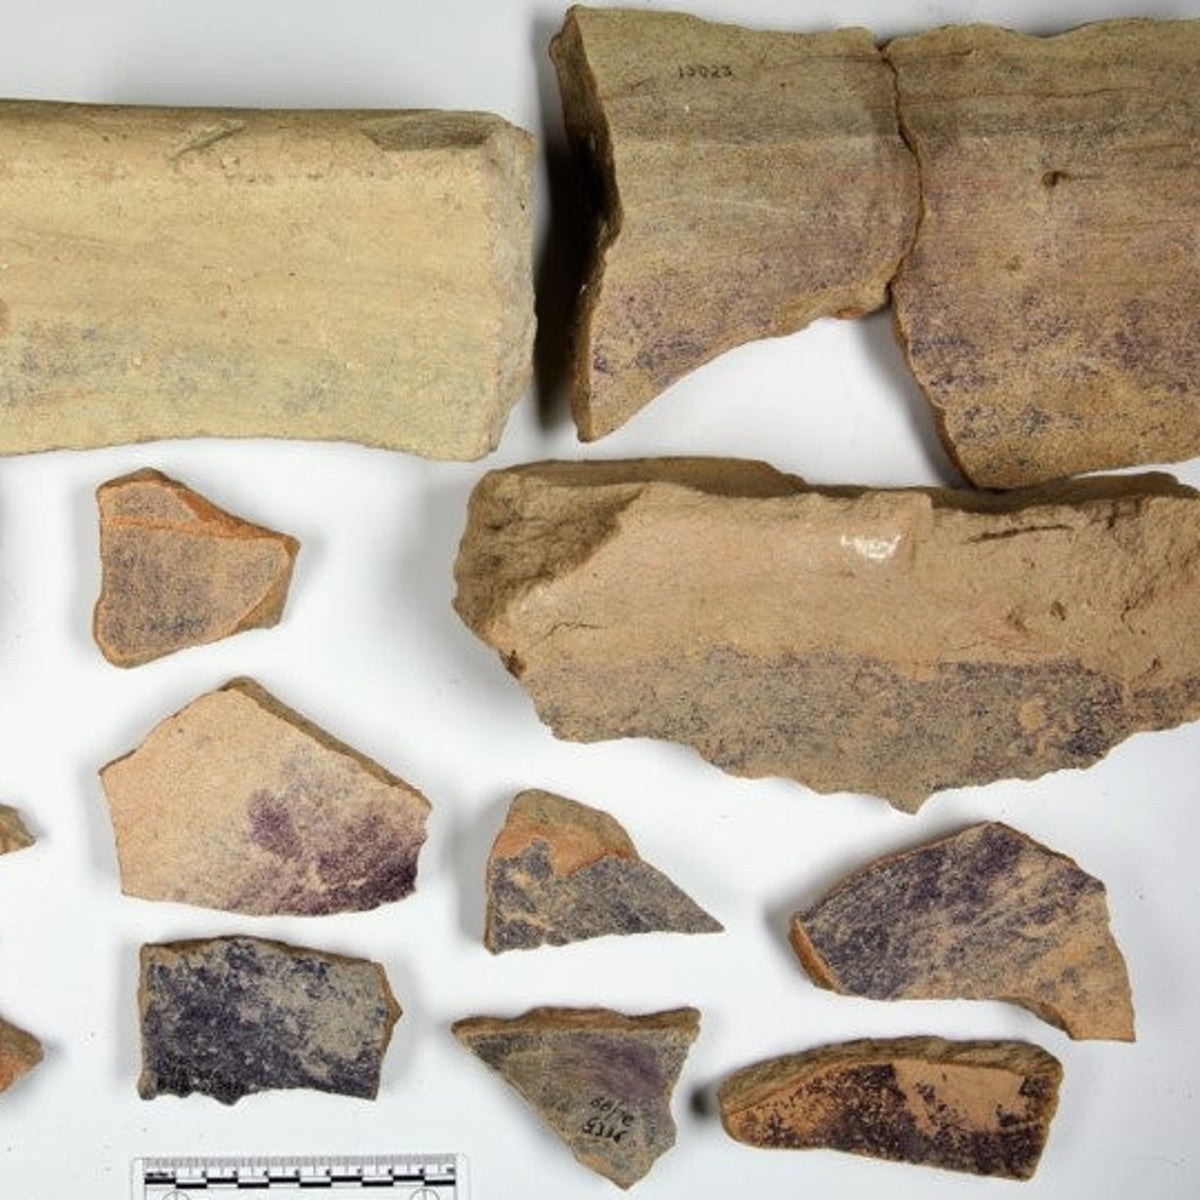 Stains of purple dye on fragments of pottery, found at Tell Shikmona